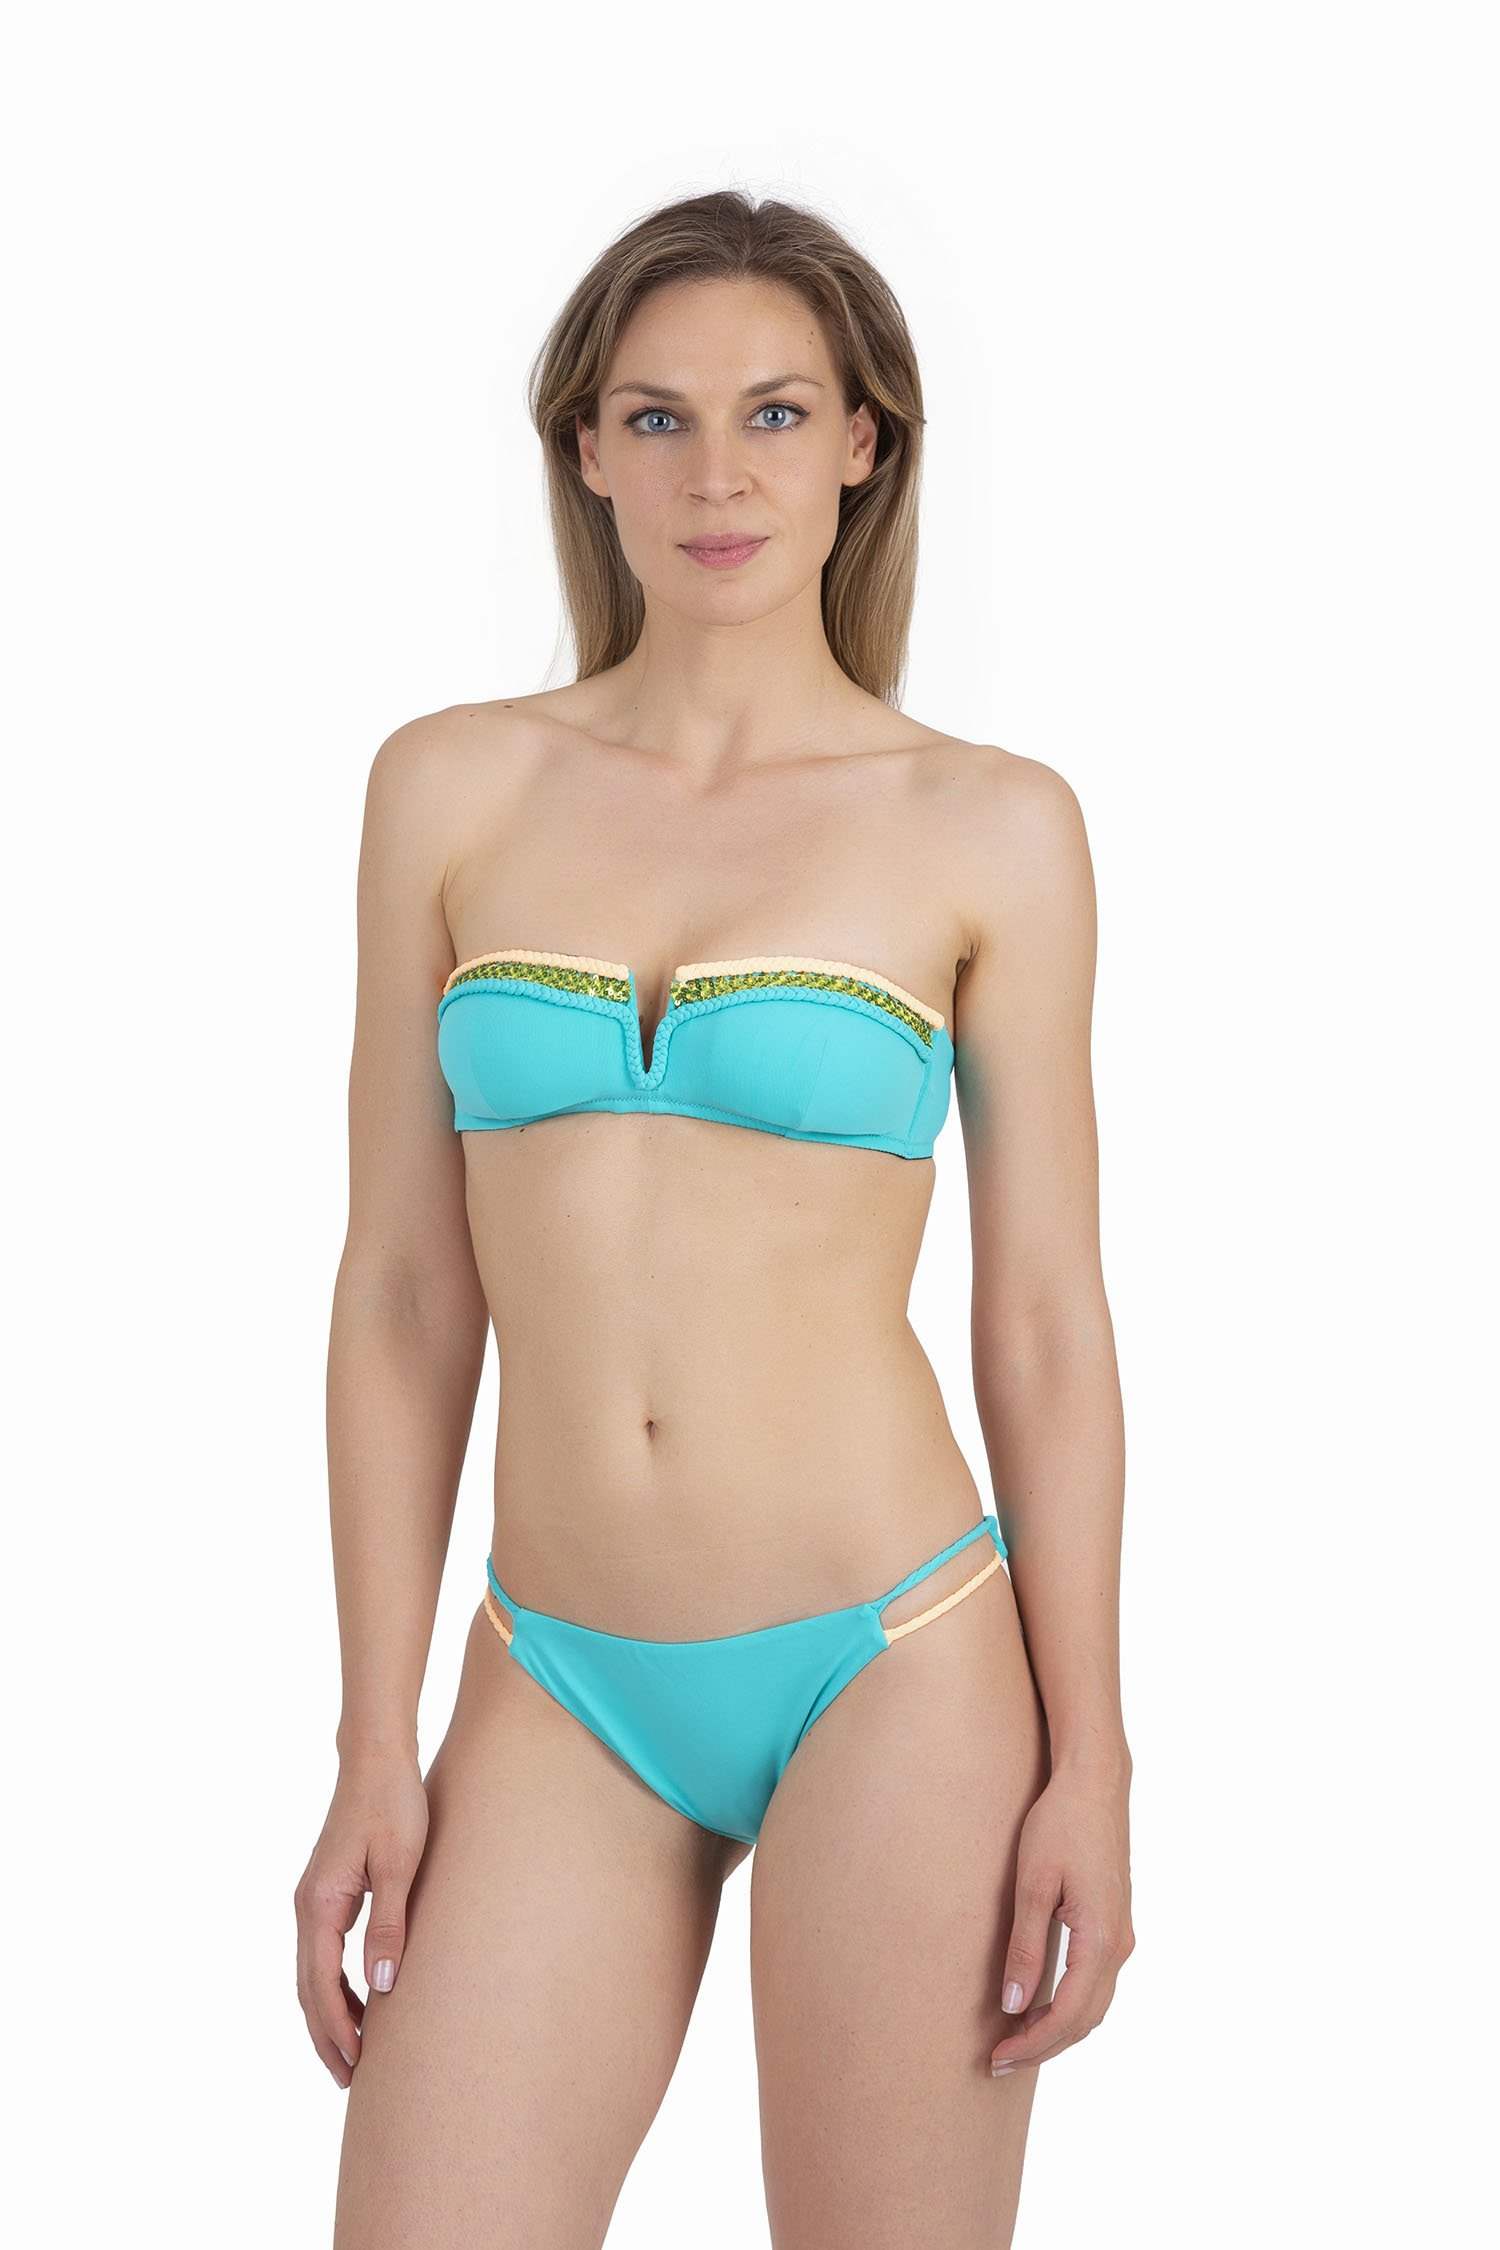 SOLID COLOUR BANDEAU BIKINI WITH APPLICATION BRAIDS AND SEQUINS - Turchese Ciano